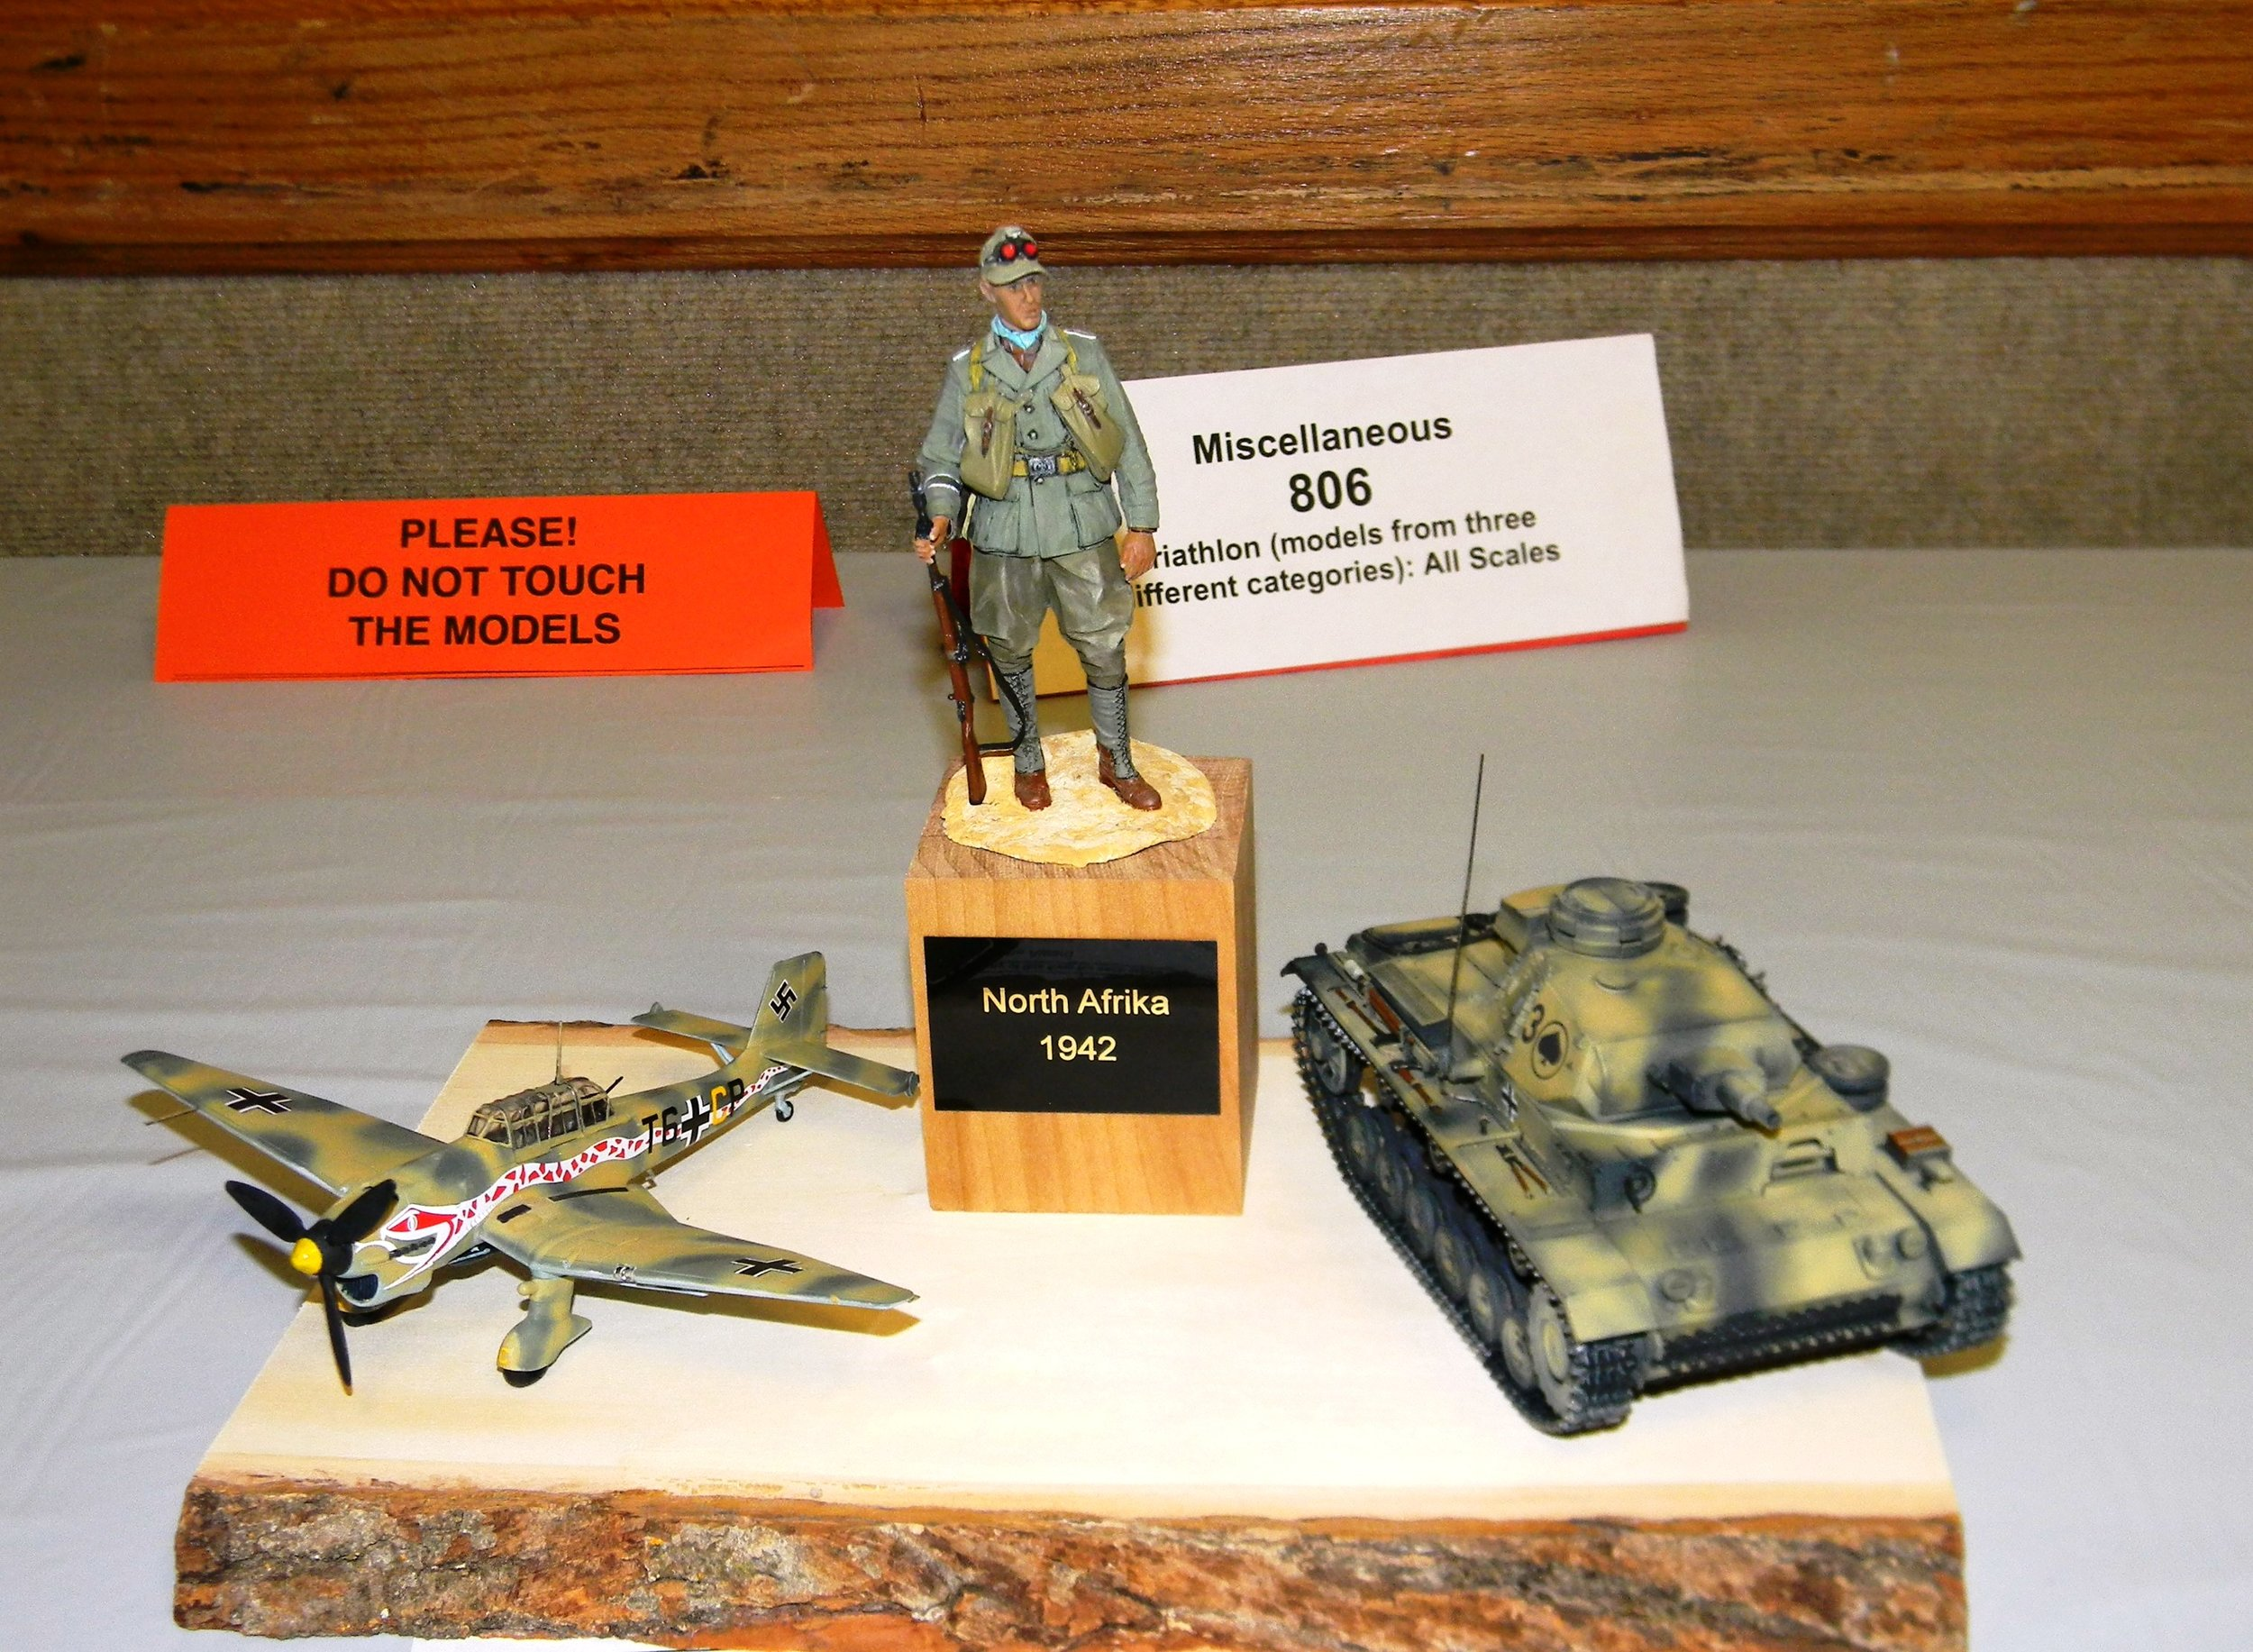 TED ANDREAS_GERMAN MILITARY IN NORTH AFRICA_TRIPLE PLAY, 1ST PLACE_SCALEFEST 2019 GRAPEVINE,TX_ 1 JUNE 2019.JPG